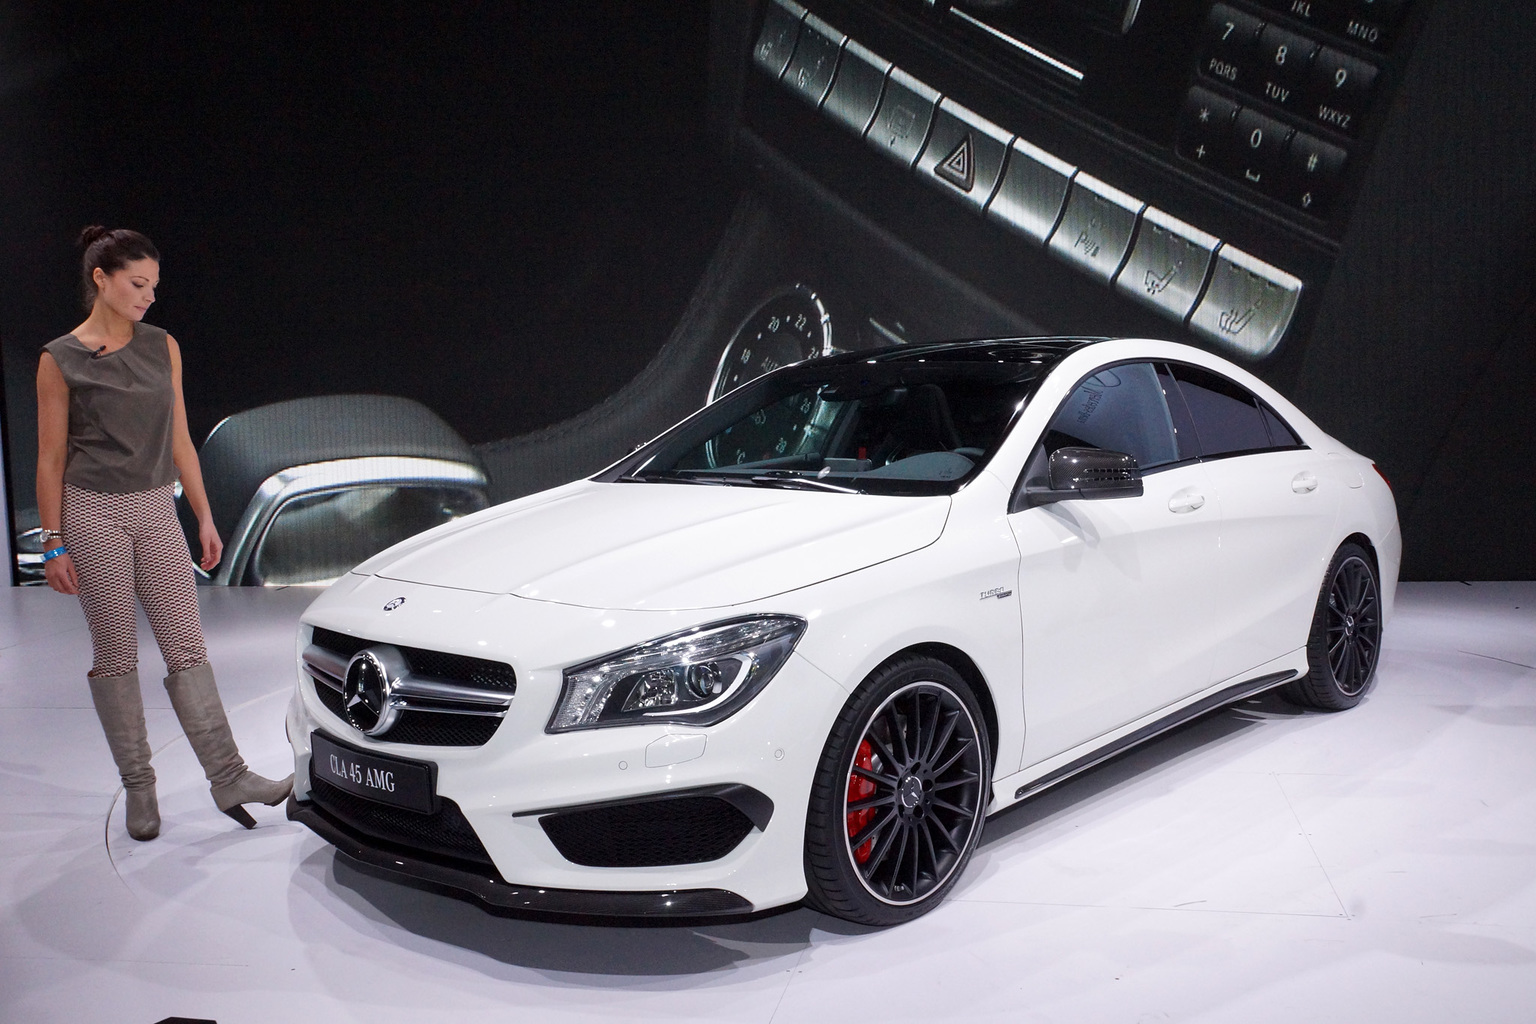 Mercedes Benz mercedes benz cla 45 : 2013 Mercedes-Benz CLA 45 AMG | | SuperCars.net